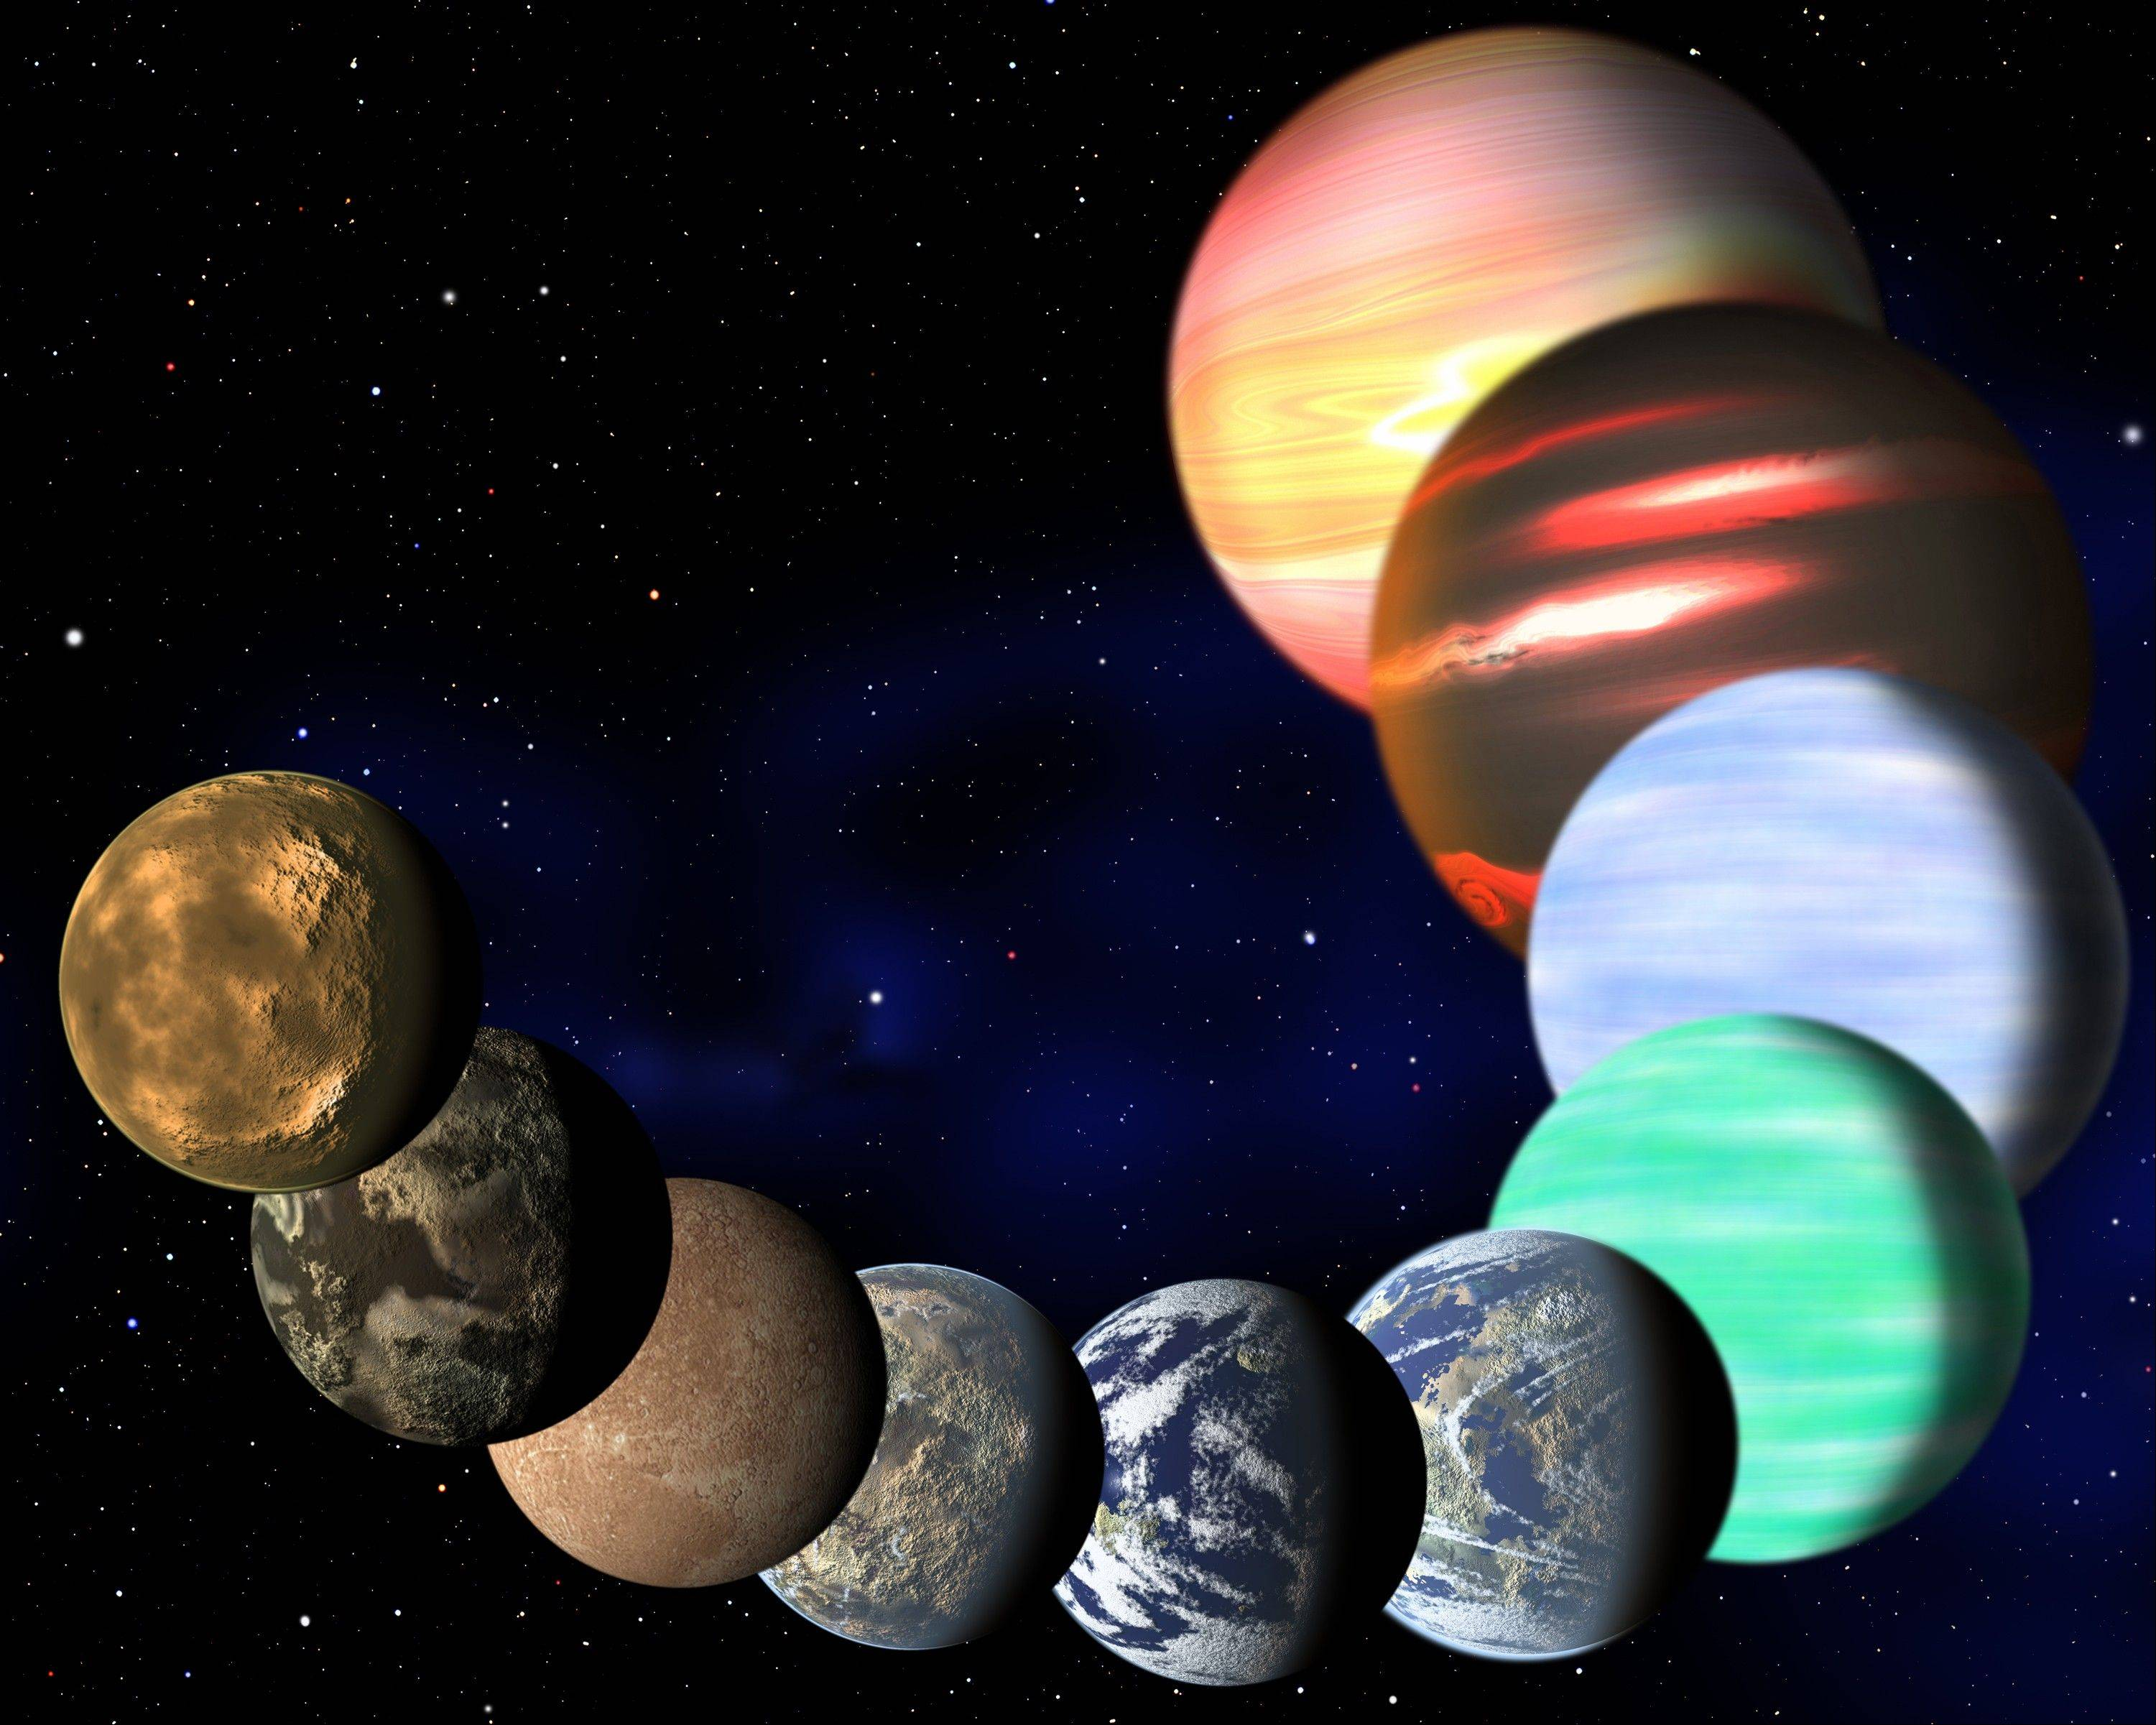 ASSOCIATED PRESSThis artist rendering shows the different types of planets in our Milky Way galaxy detected by NASA's Kepler spacecraft. A new analysis of Kepler data found there are at least 17 billion planets the size of Earth.